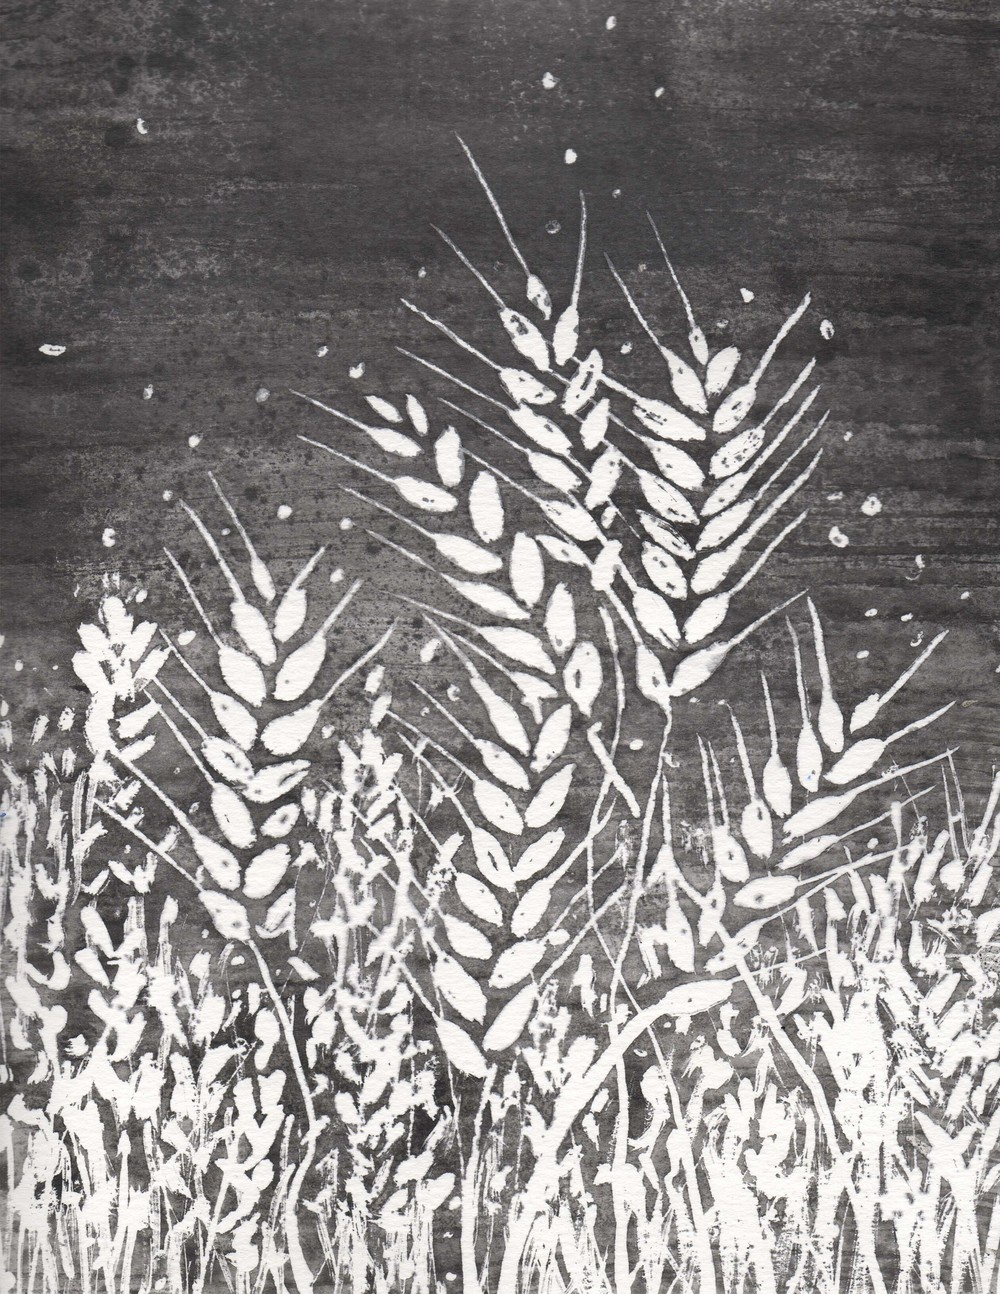 wheat stalk bw.jpg